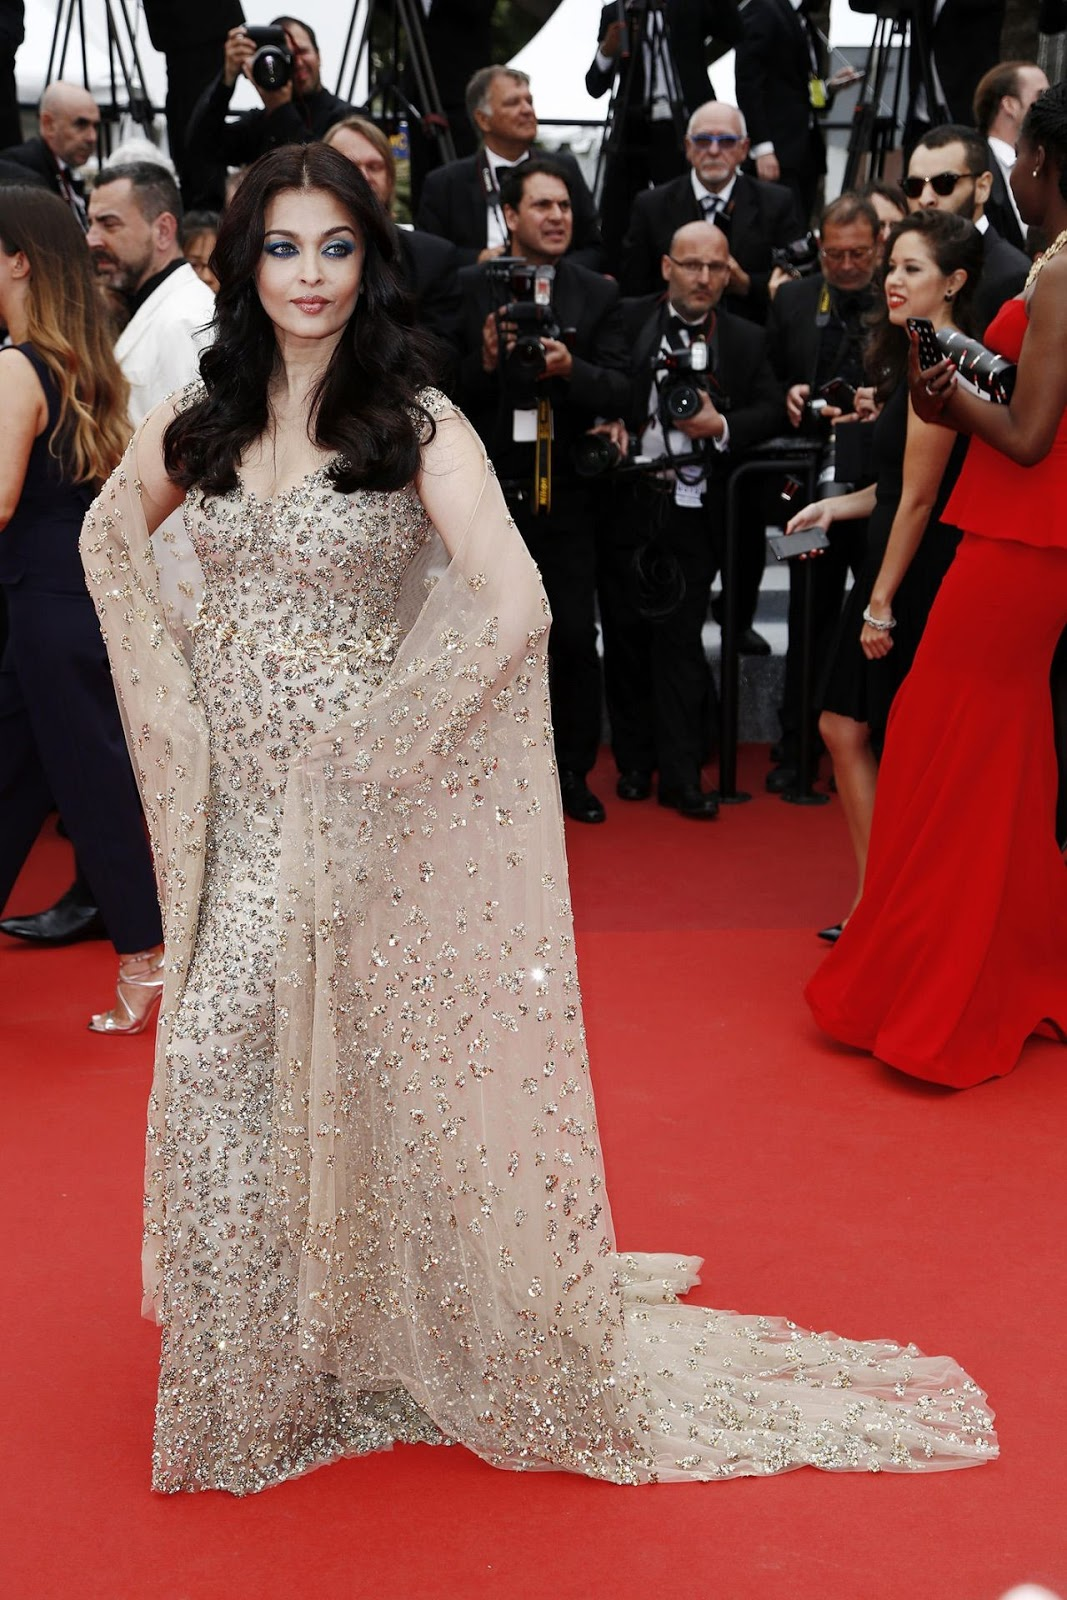 Aishwarya Rai at the Cannes Film Festival in an embellished gown and cape